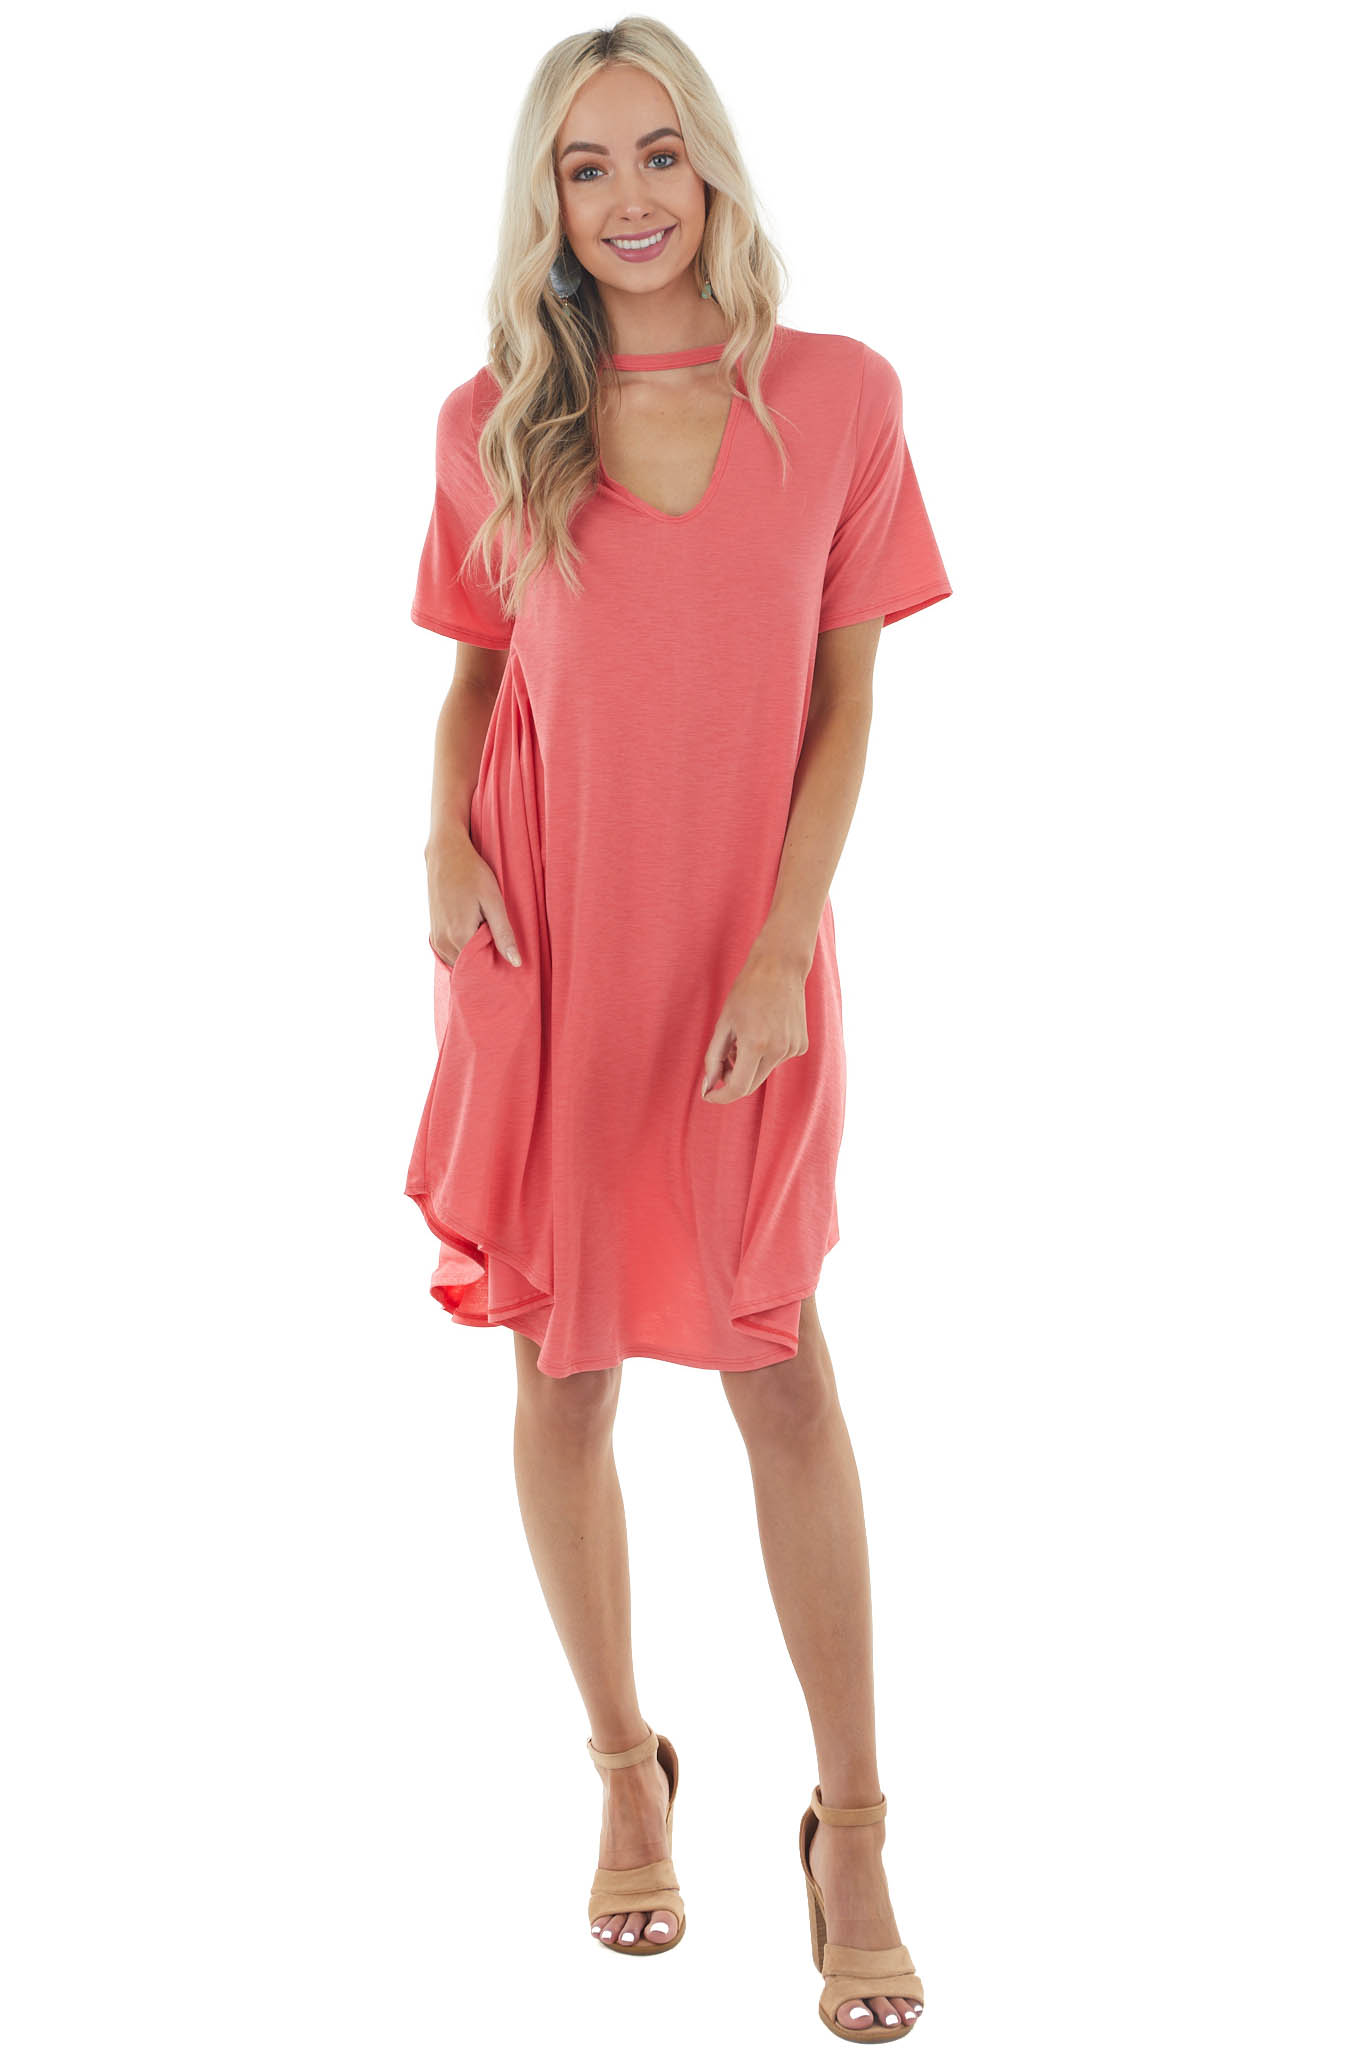 Heathered Coral Short Sleeve Knit Dress with Chest Cut Out